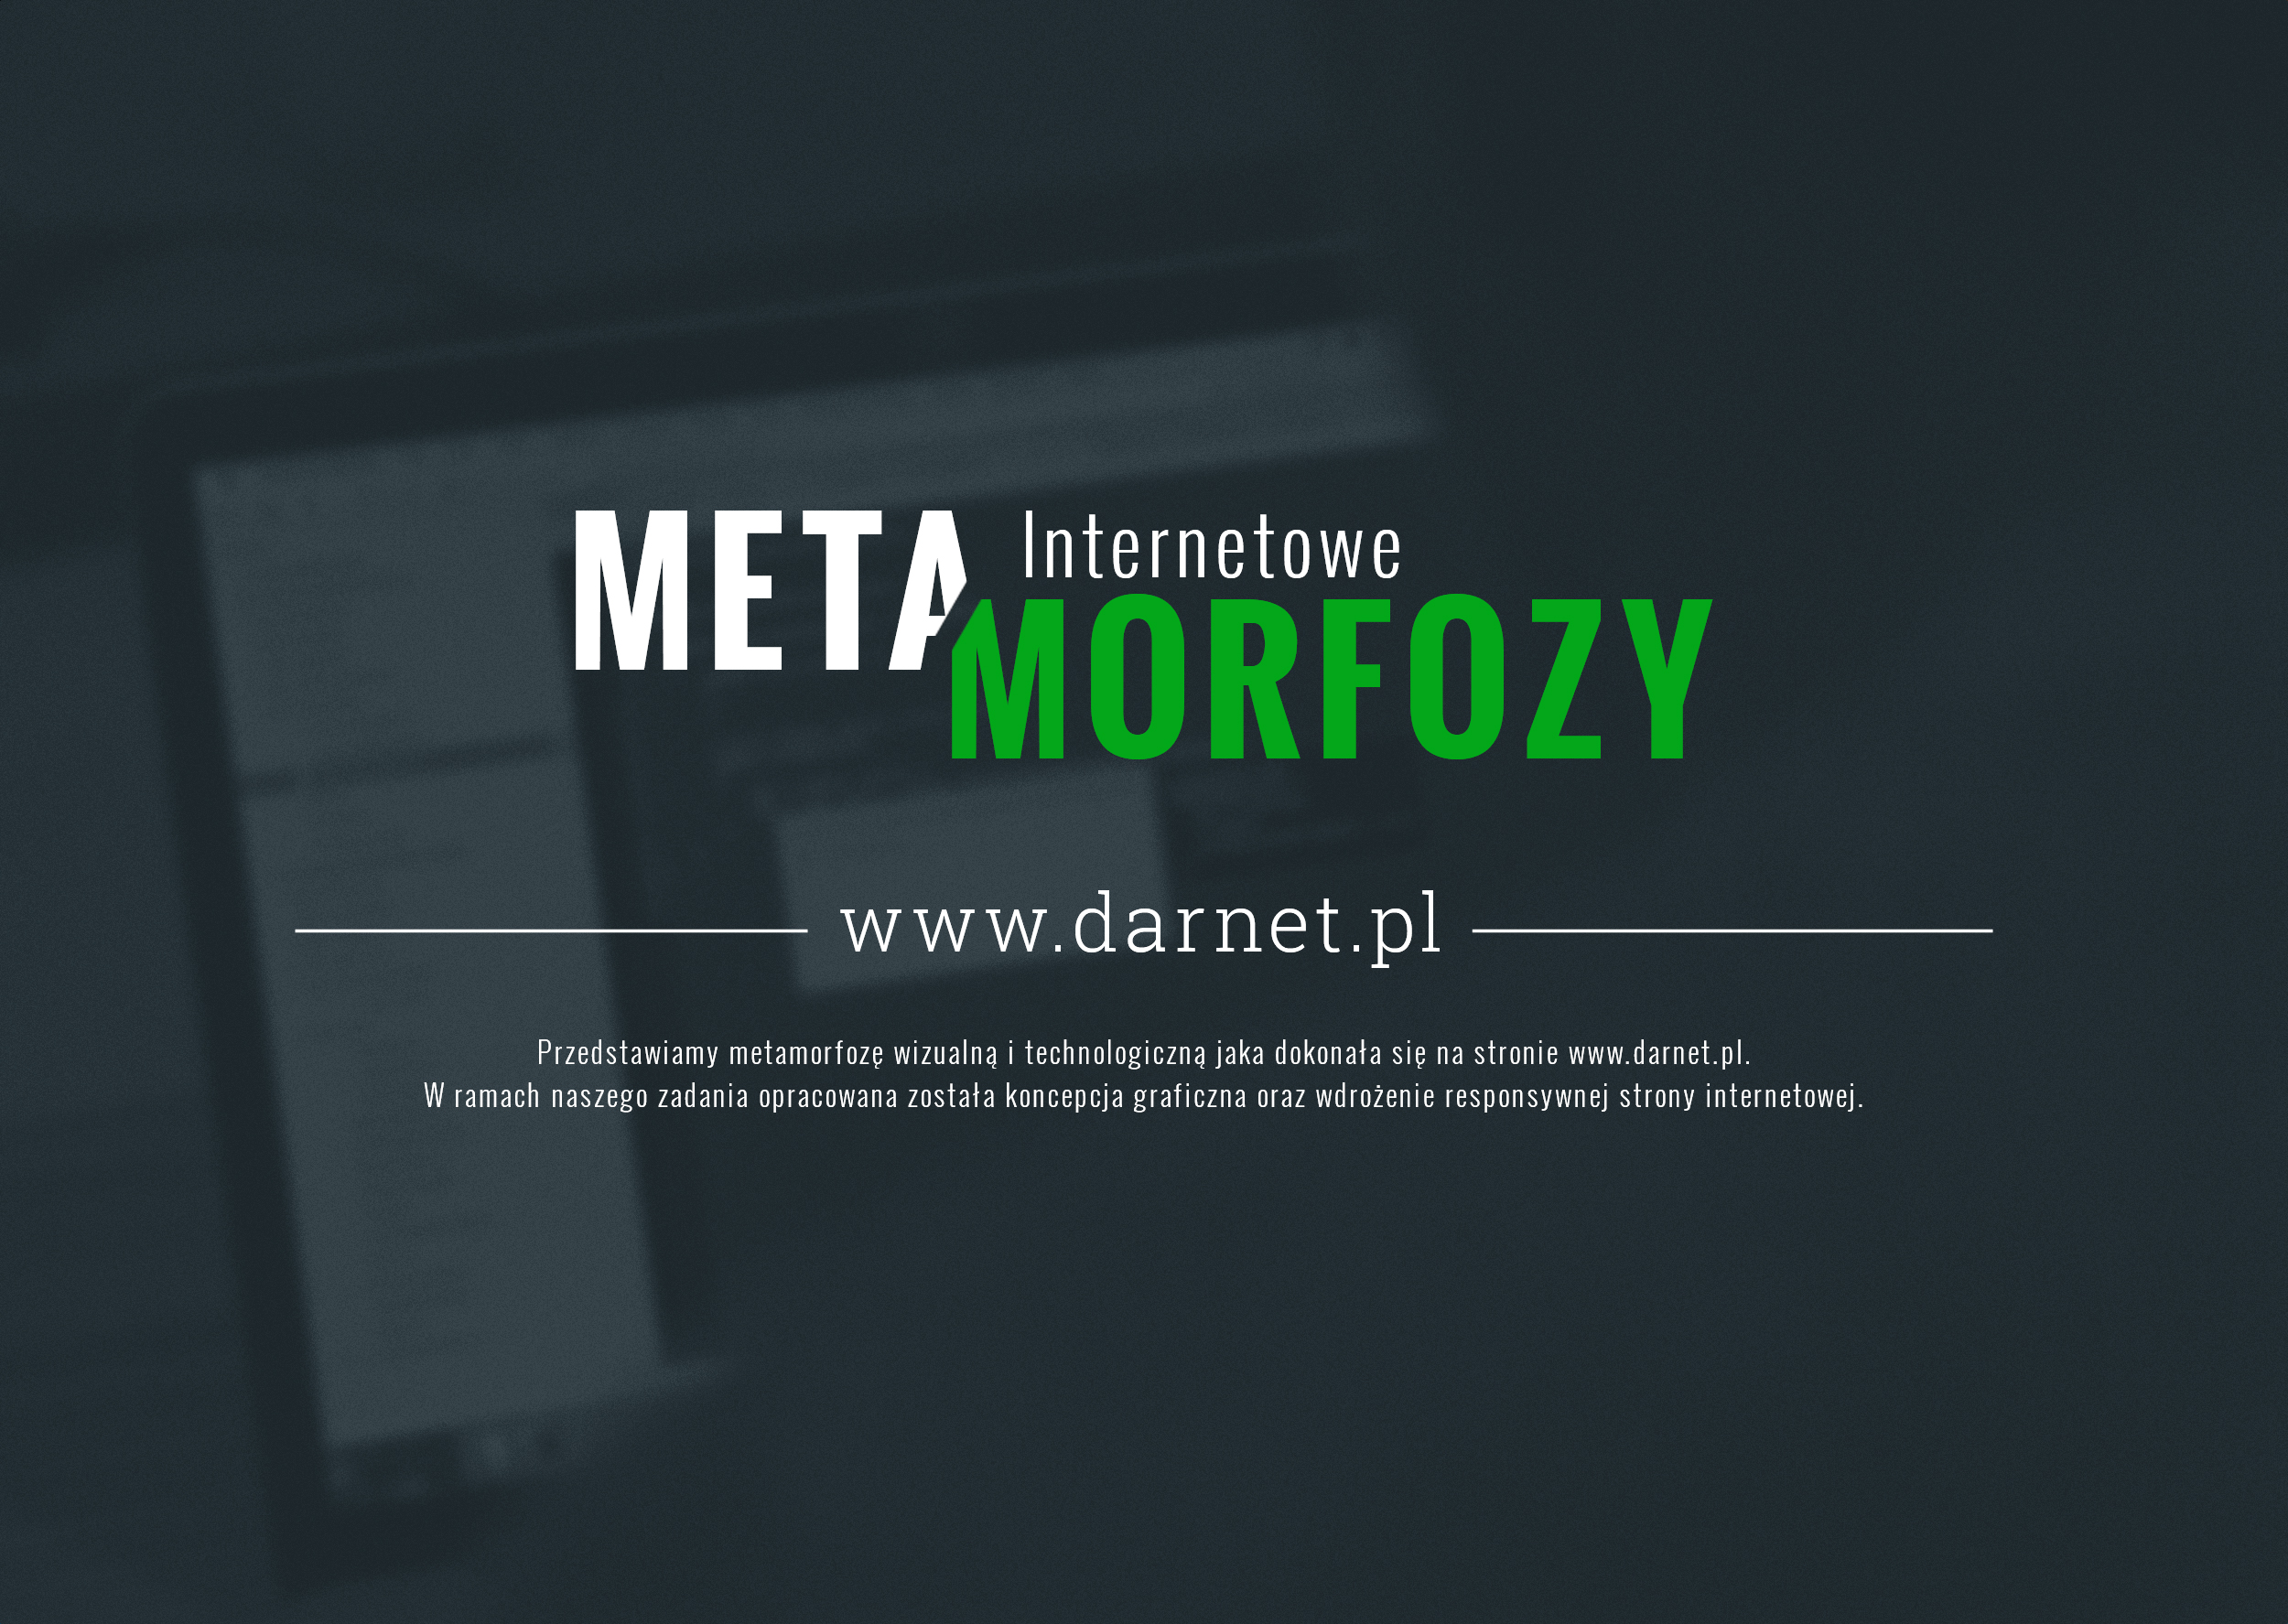 Internetowe metamorfozy